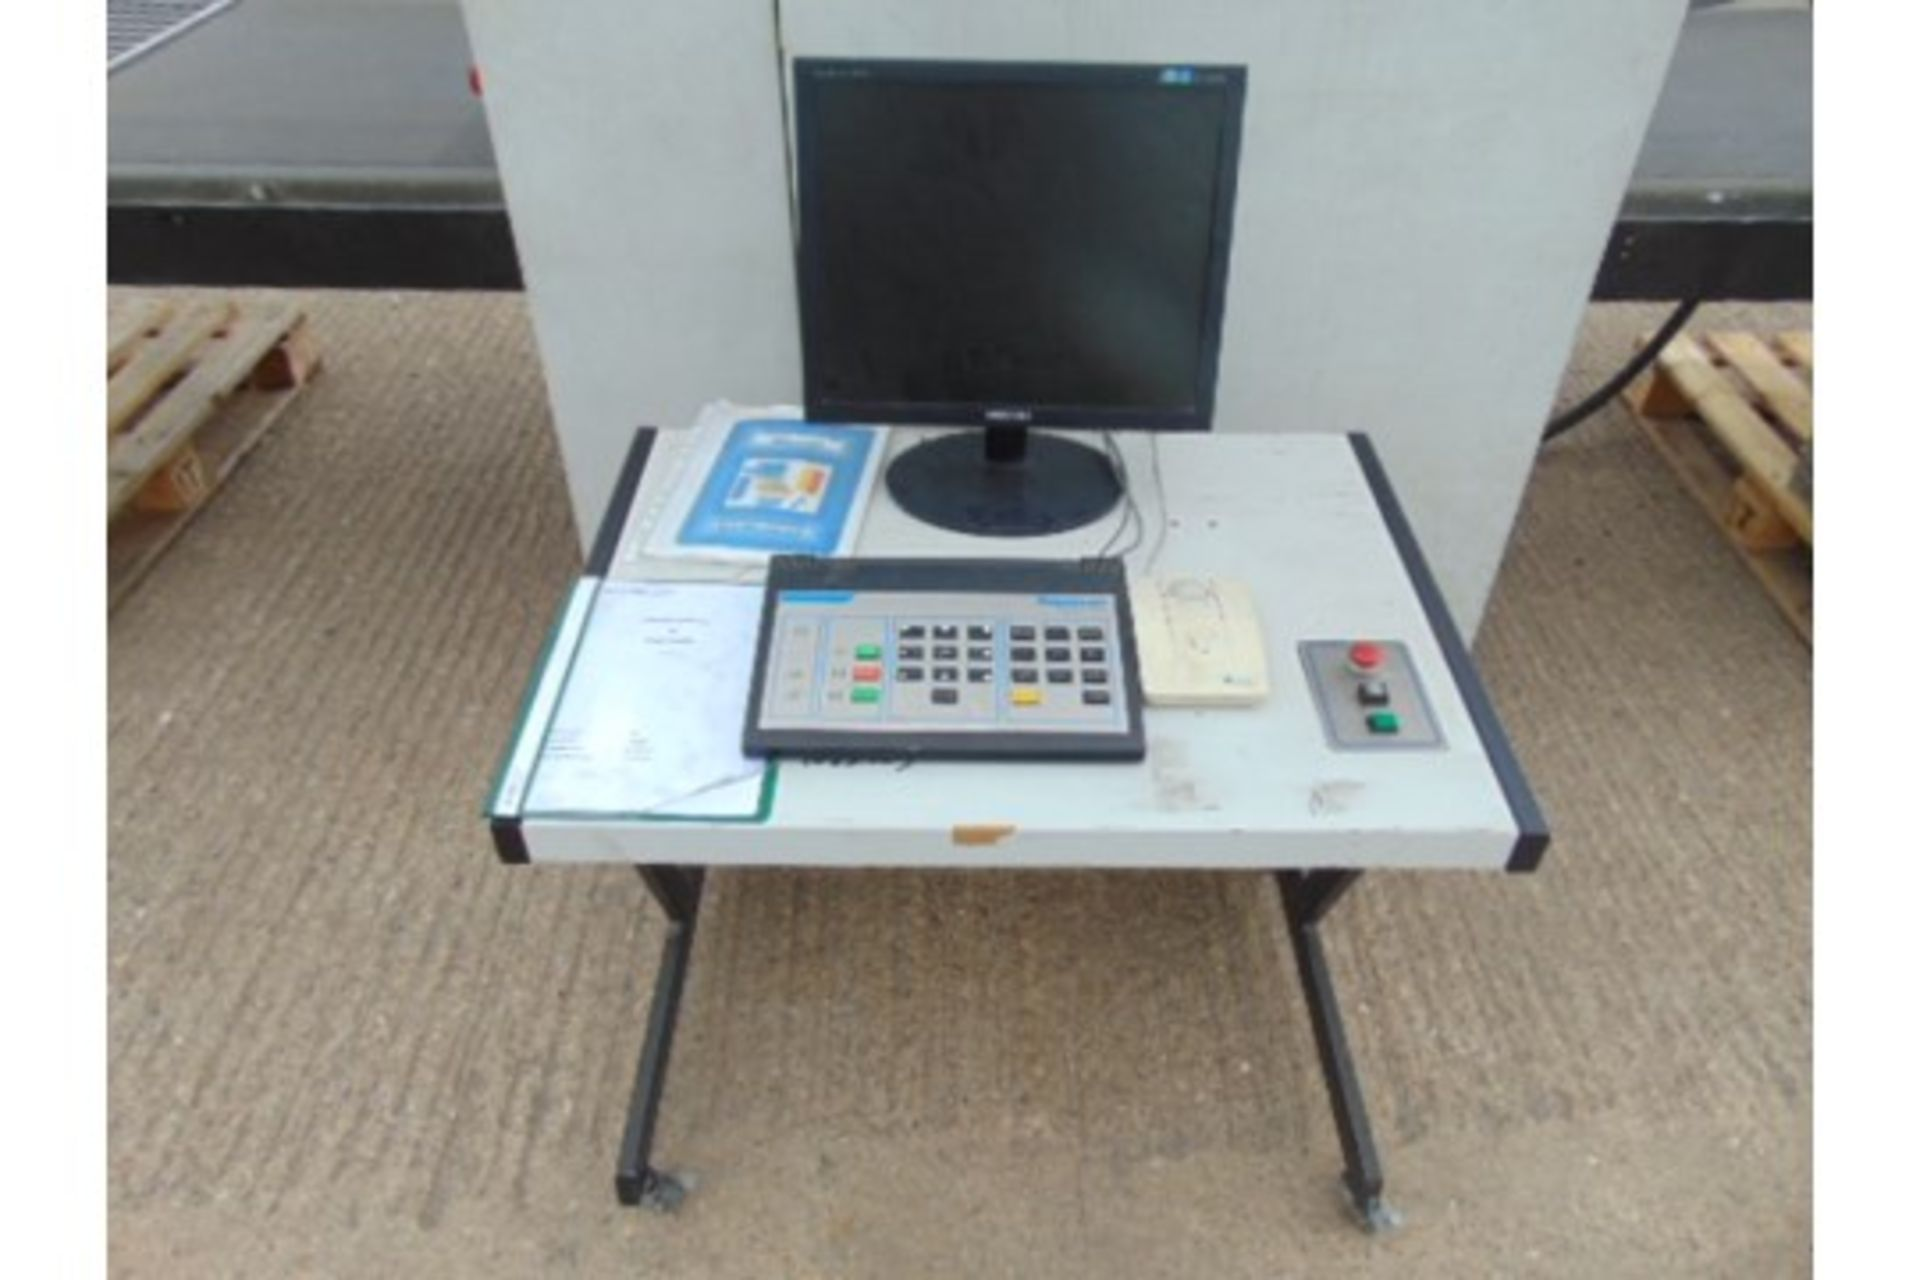 Lotto 26445 - Rapiscan 526 Airport Security Scanner